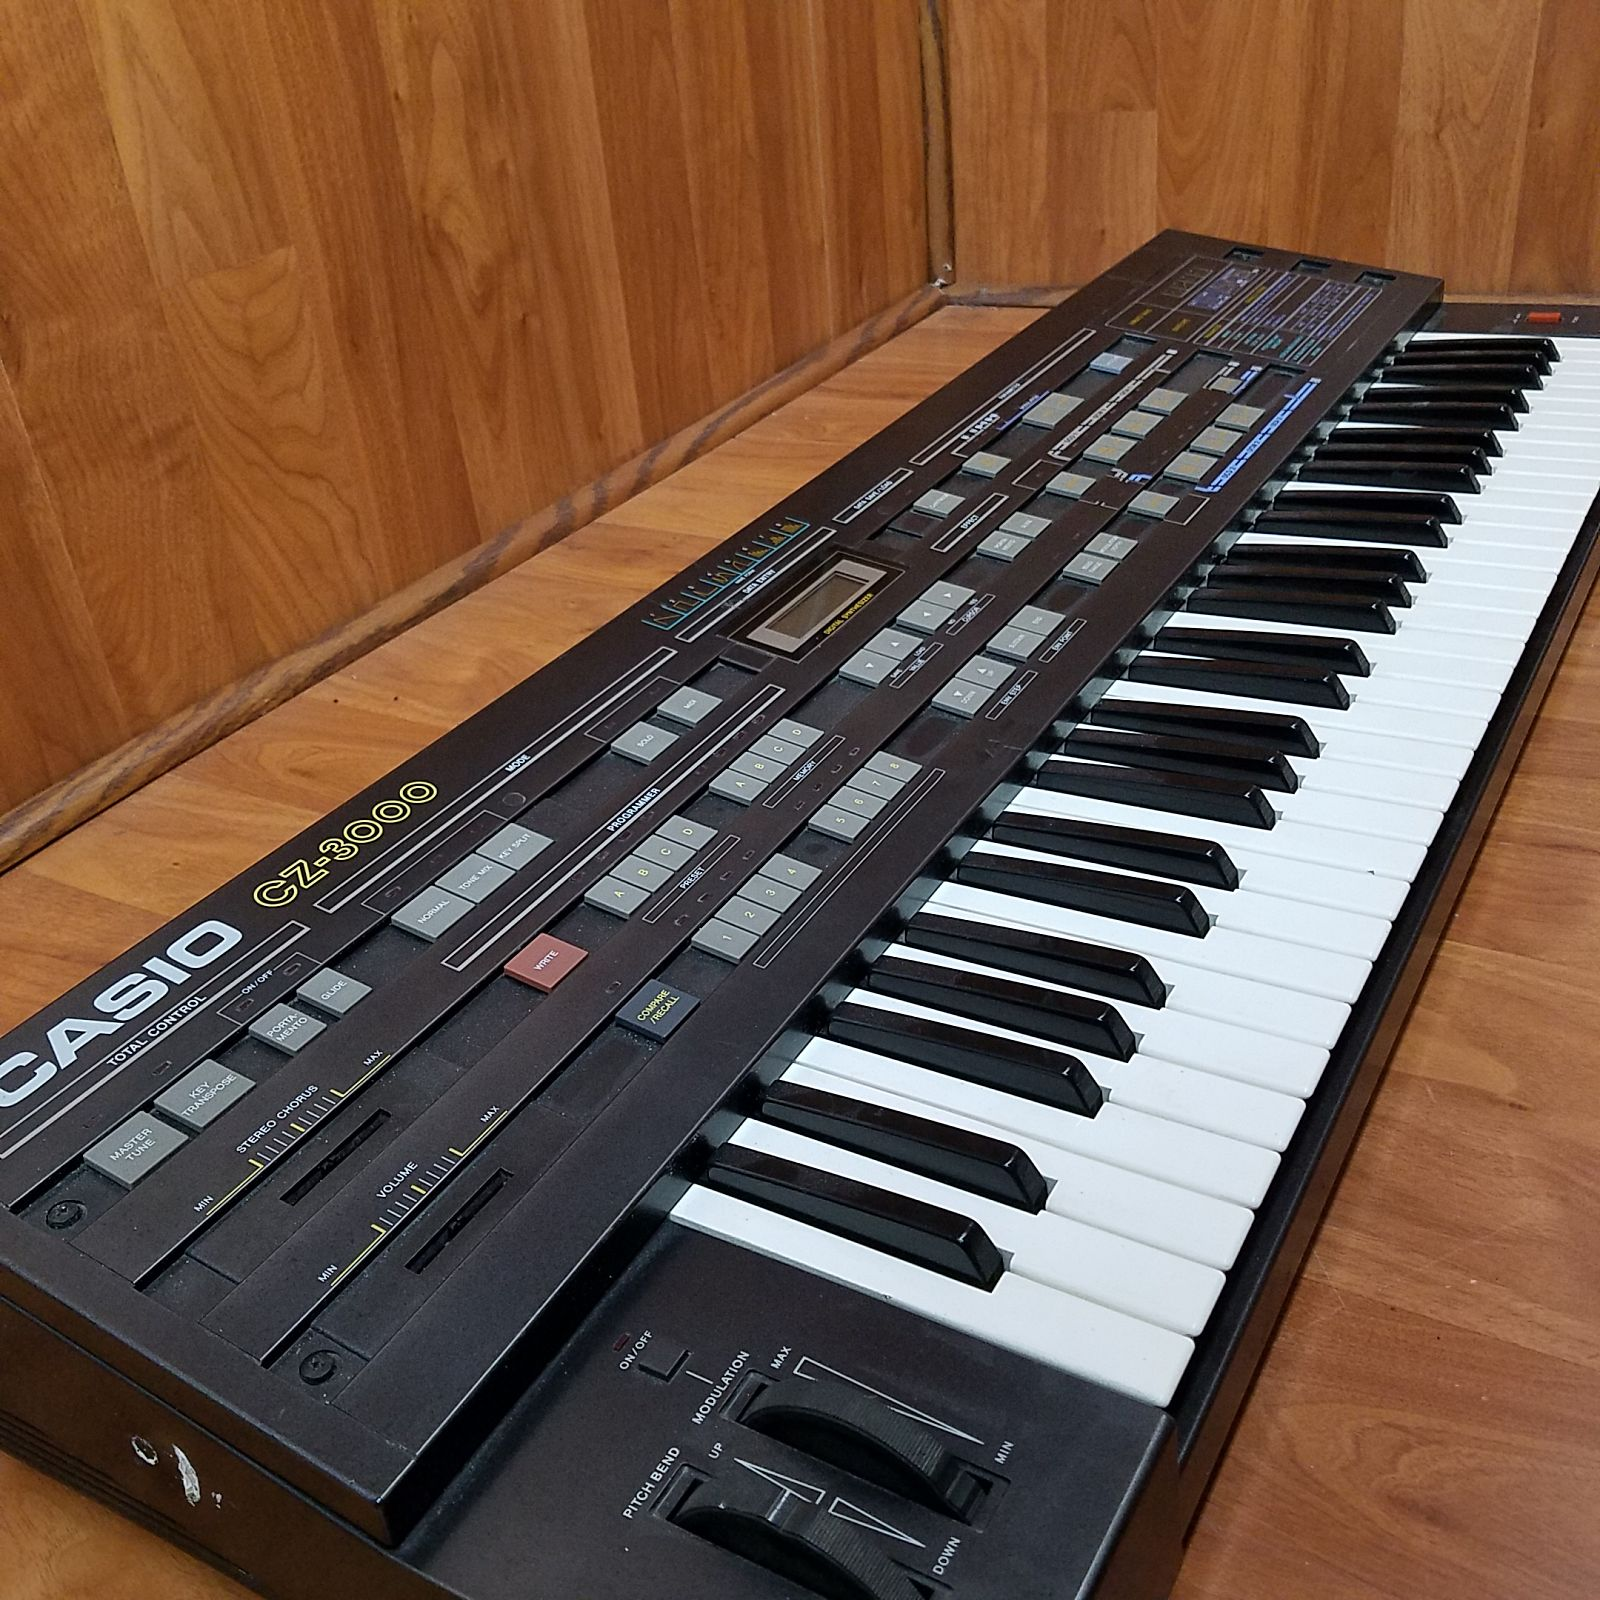 A vintage Casio keyboard from the 1980s